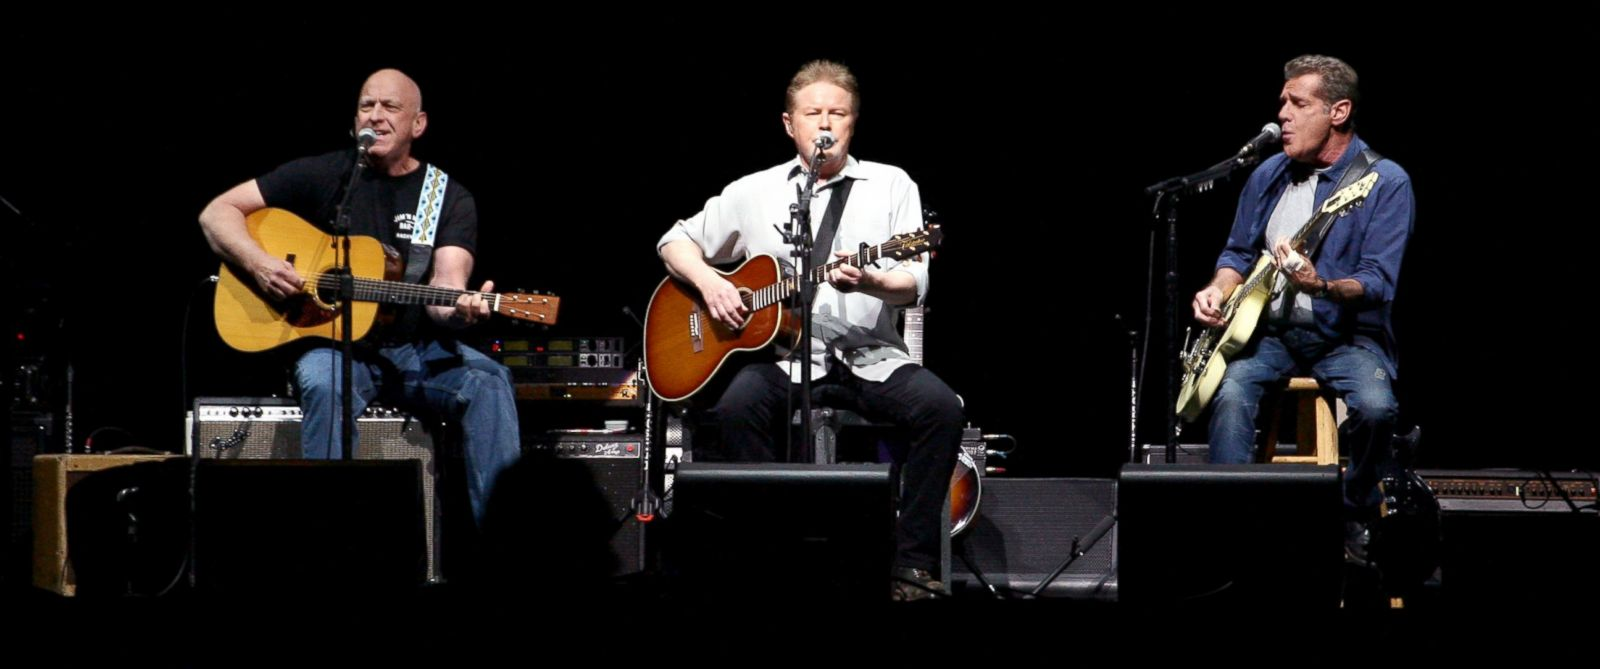 PHOTO: Musicians Bernie Leadon, Don Henley and Glenn Frey of The Eagles perform at the grand opening of the newly renovated Forum, Jan. 15, 2014, in Inglewood, Calif.